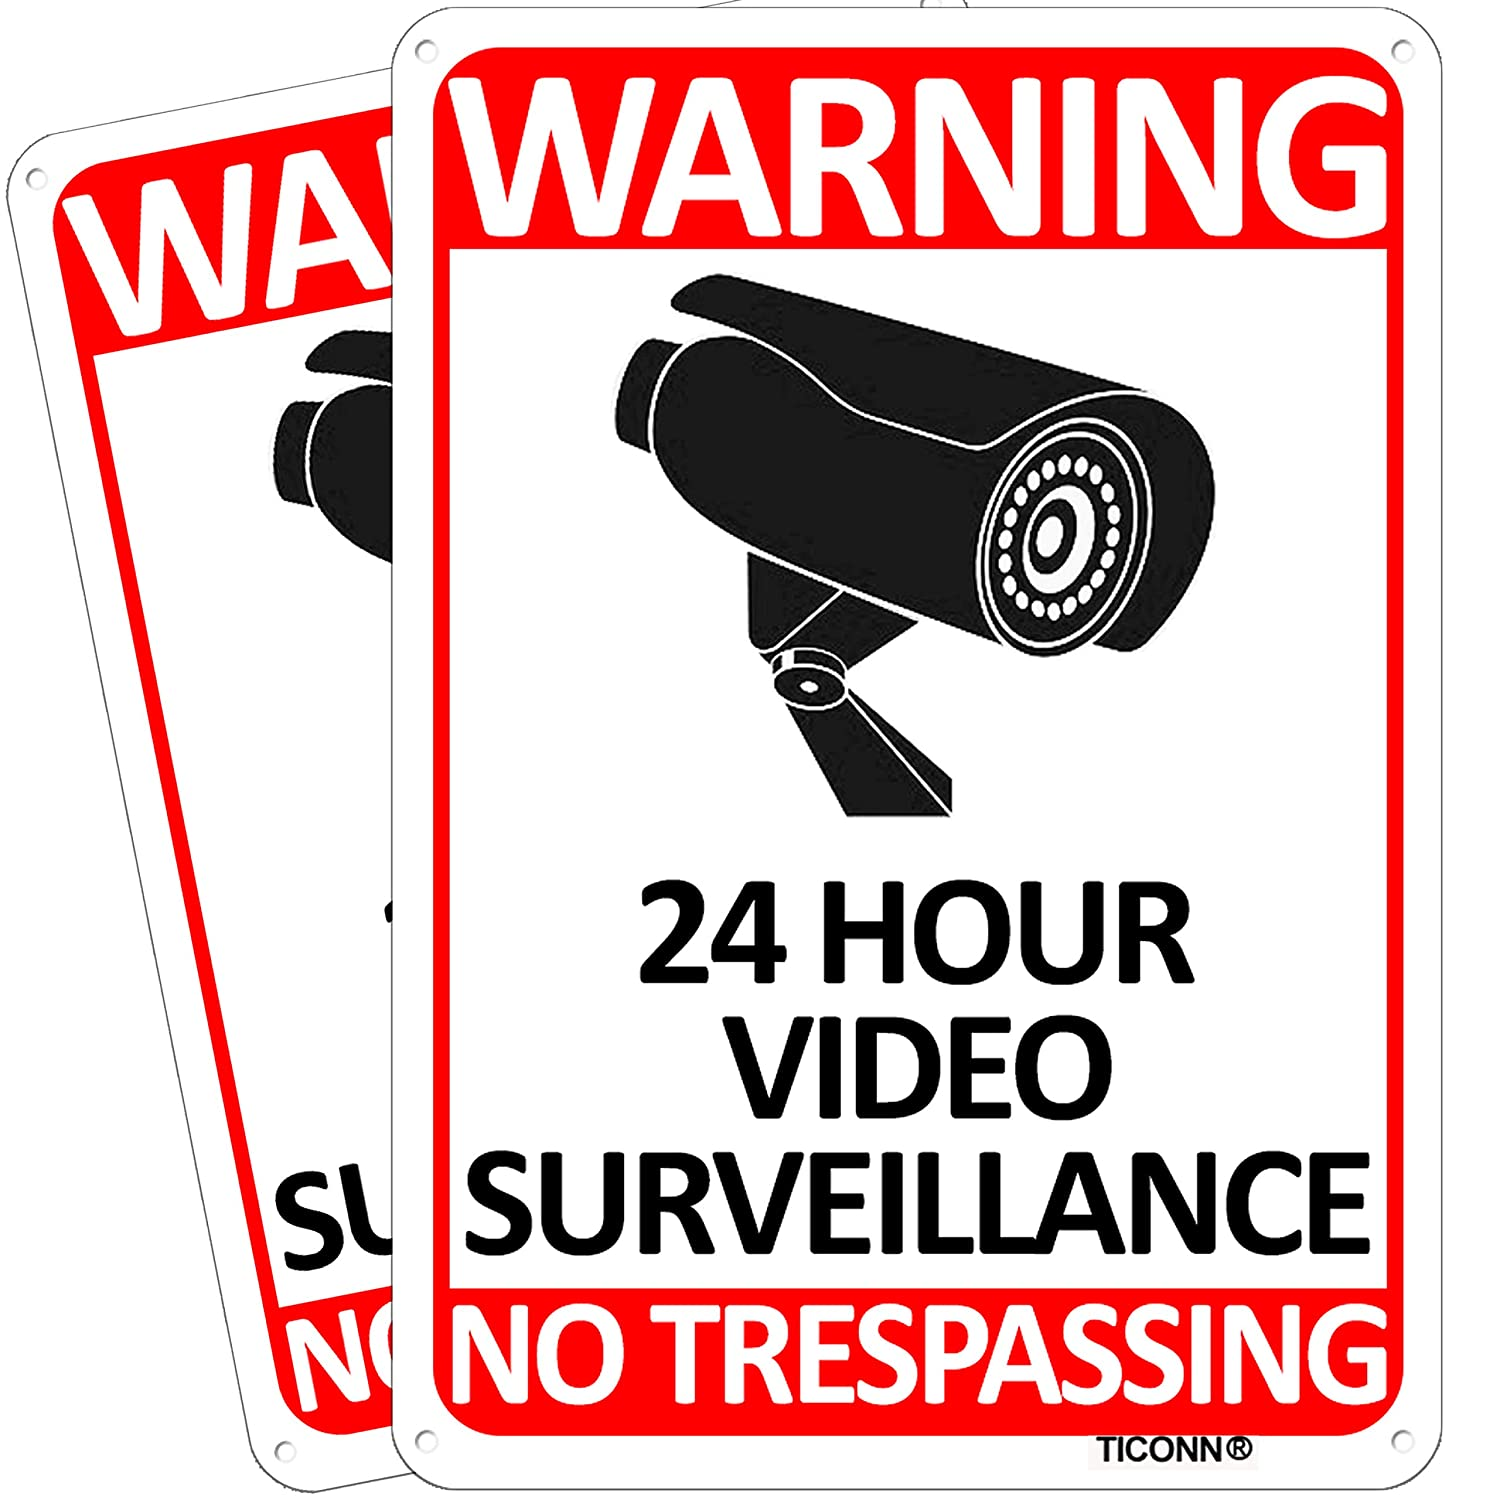 TICONN 2-Pack 24 Hour Video Surveillance Sign, No Trespassing Aluminum Warning Sign, 10''x7'' for CCTV Security Camera - Reflective, UV Protected